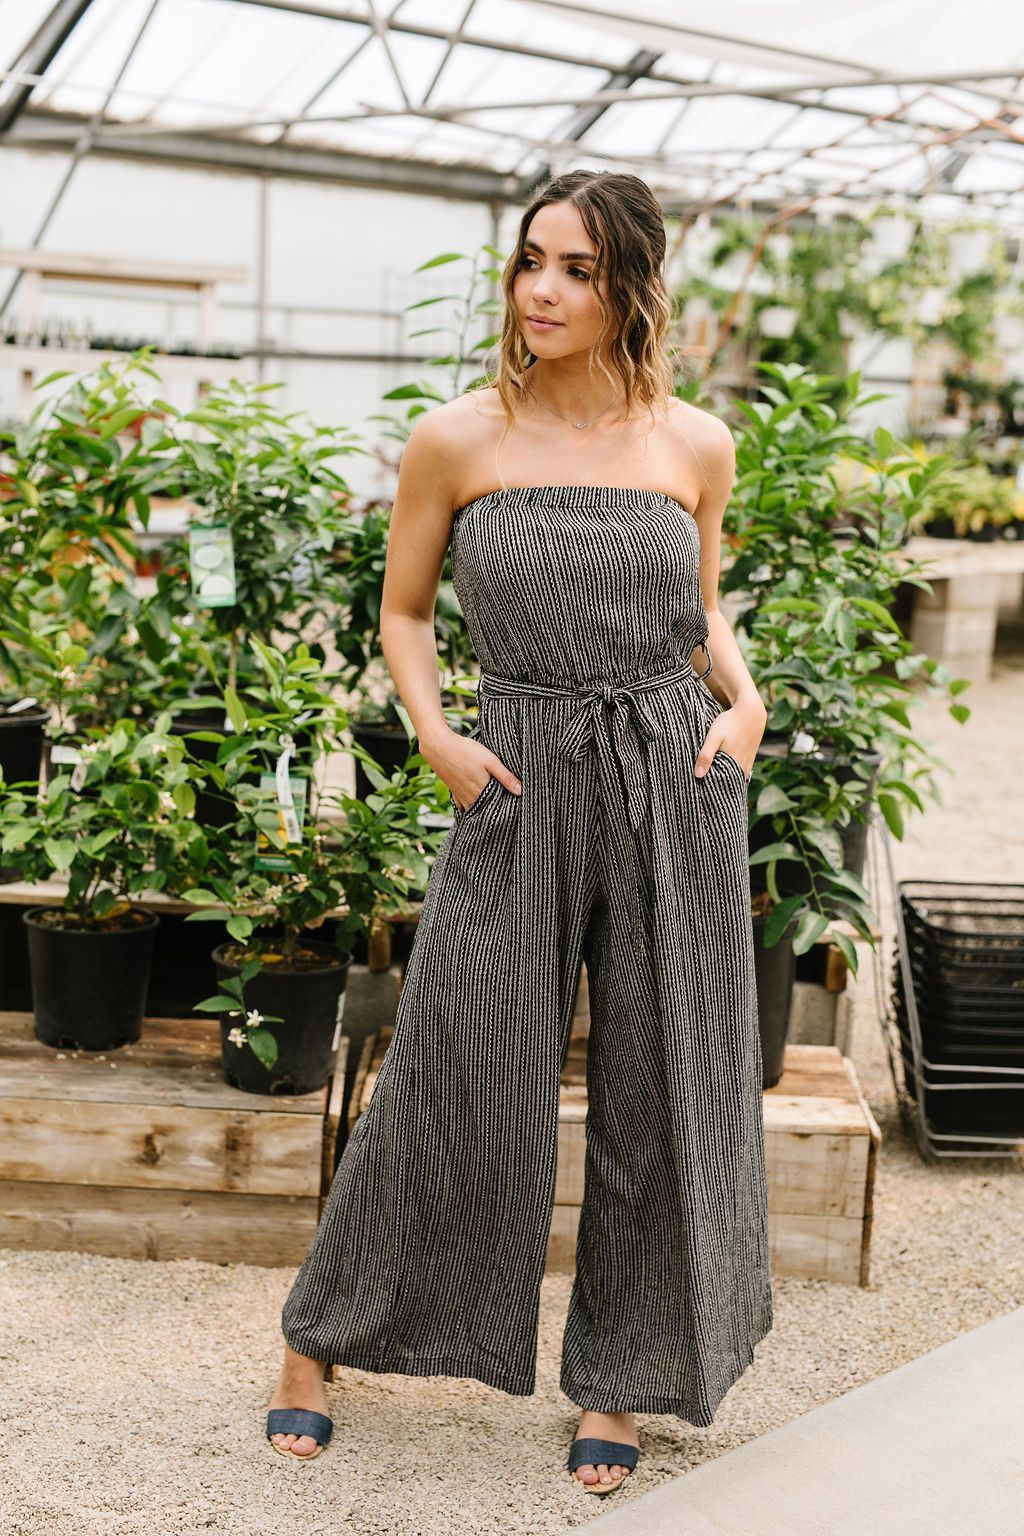 Jumpsuit: Cropped & Striped